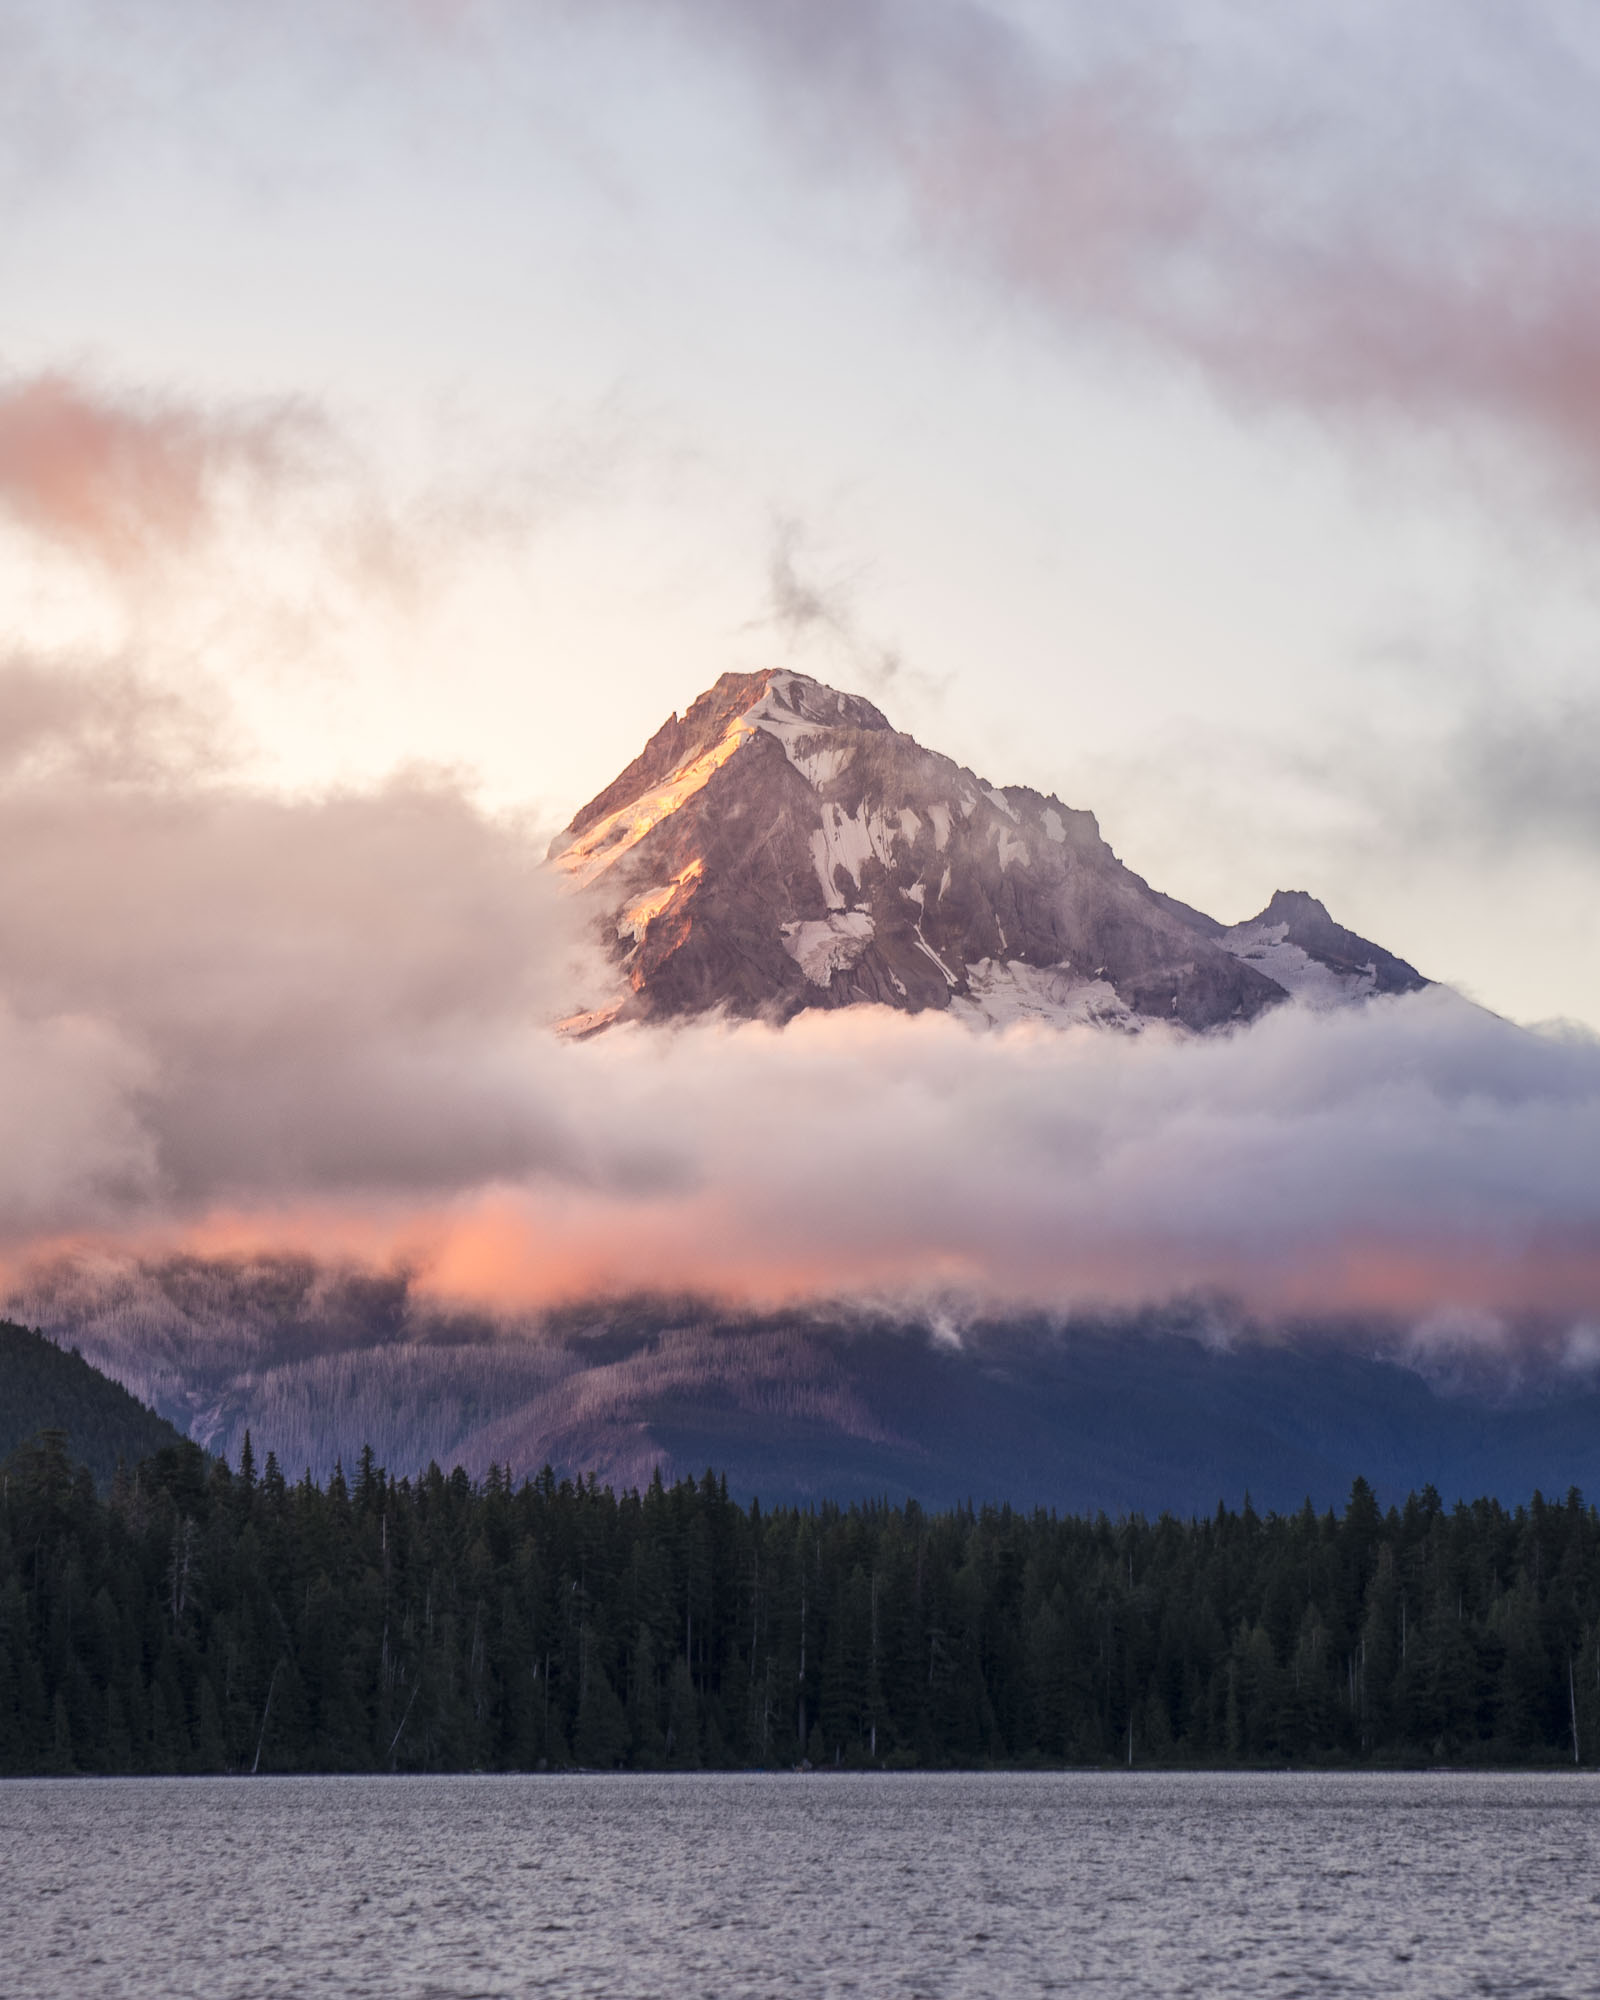 The sunrise over Mount Hood at Lost Lake in Hood River, Oregon.